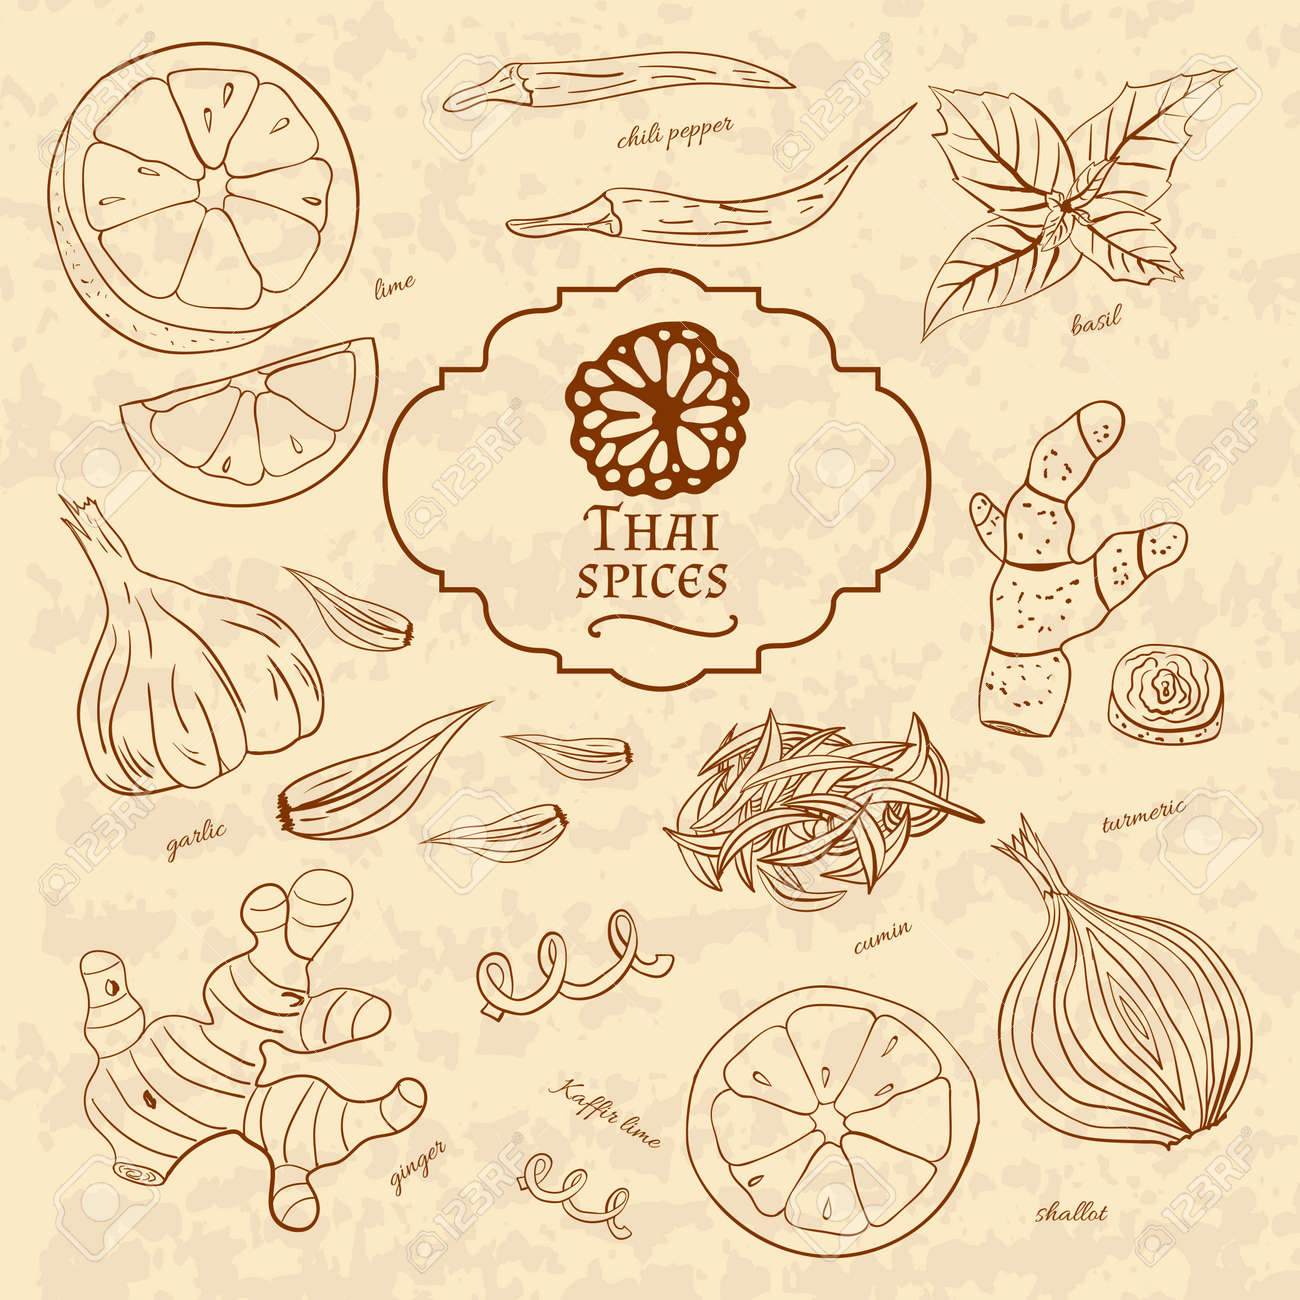 Set of spices cuisines of Thailand on old paper in vintage style. Vector illustration - 50566281